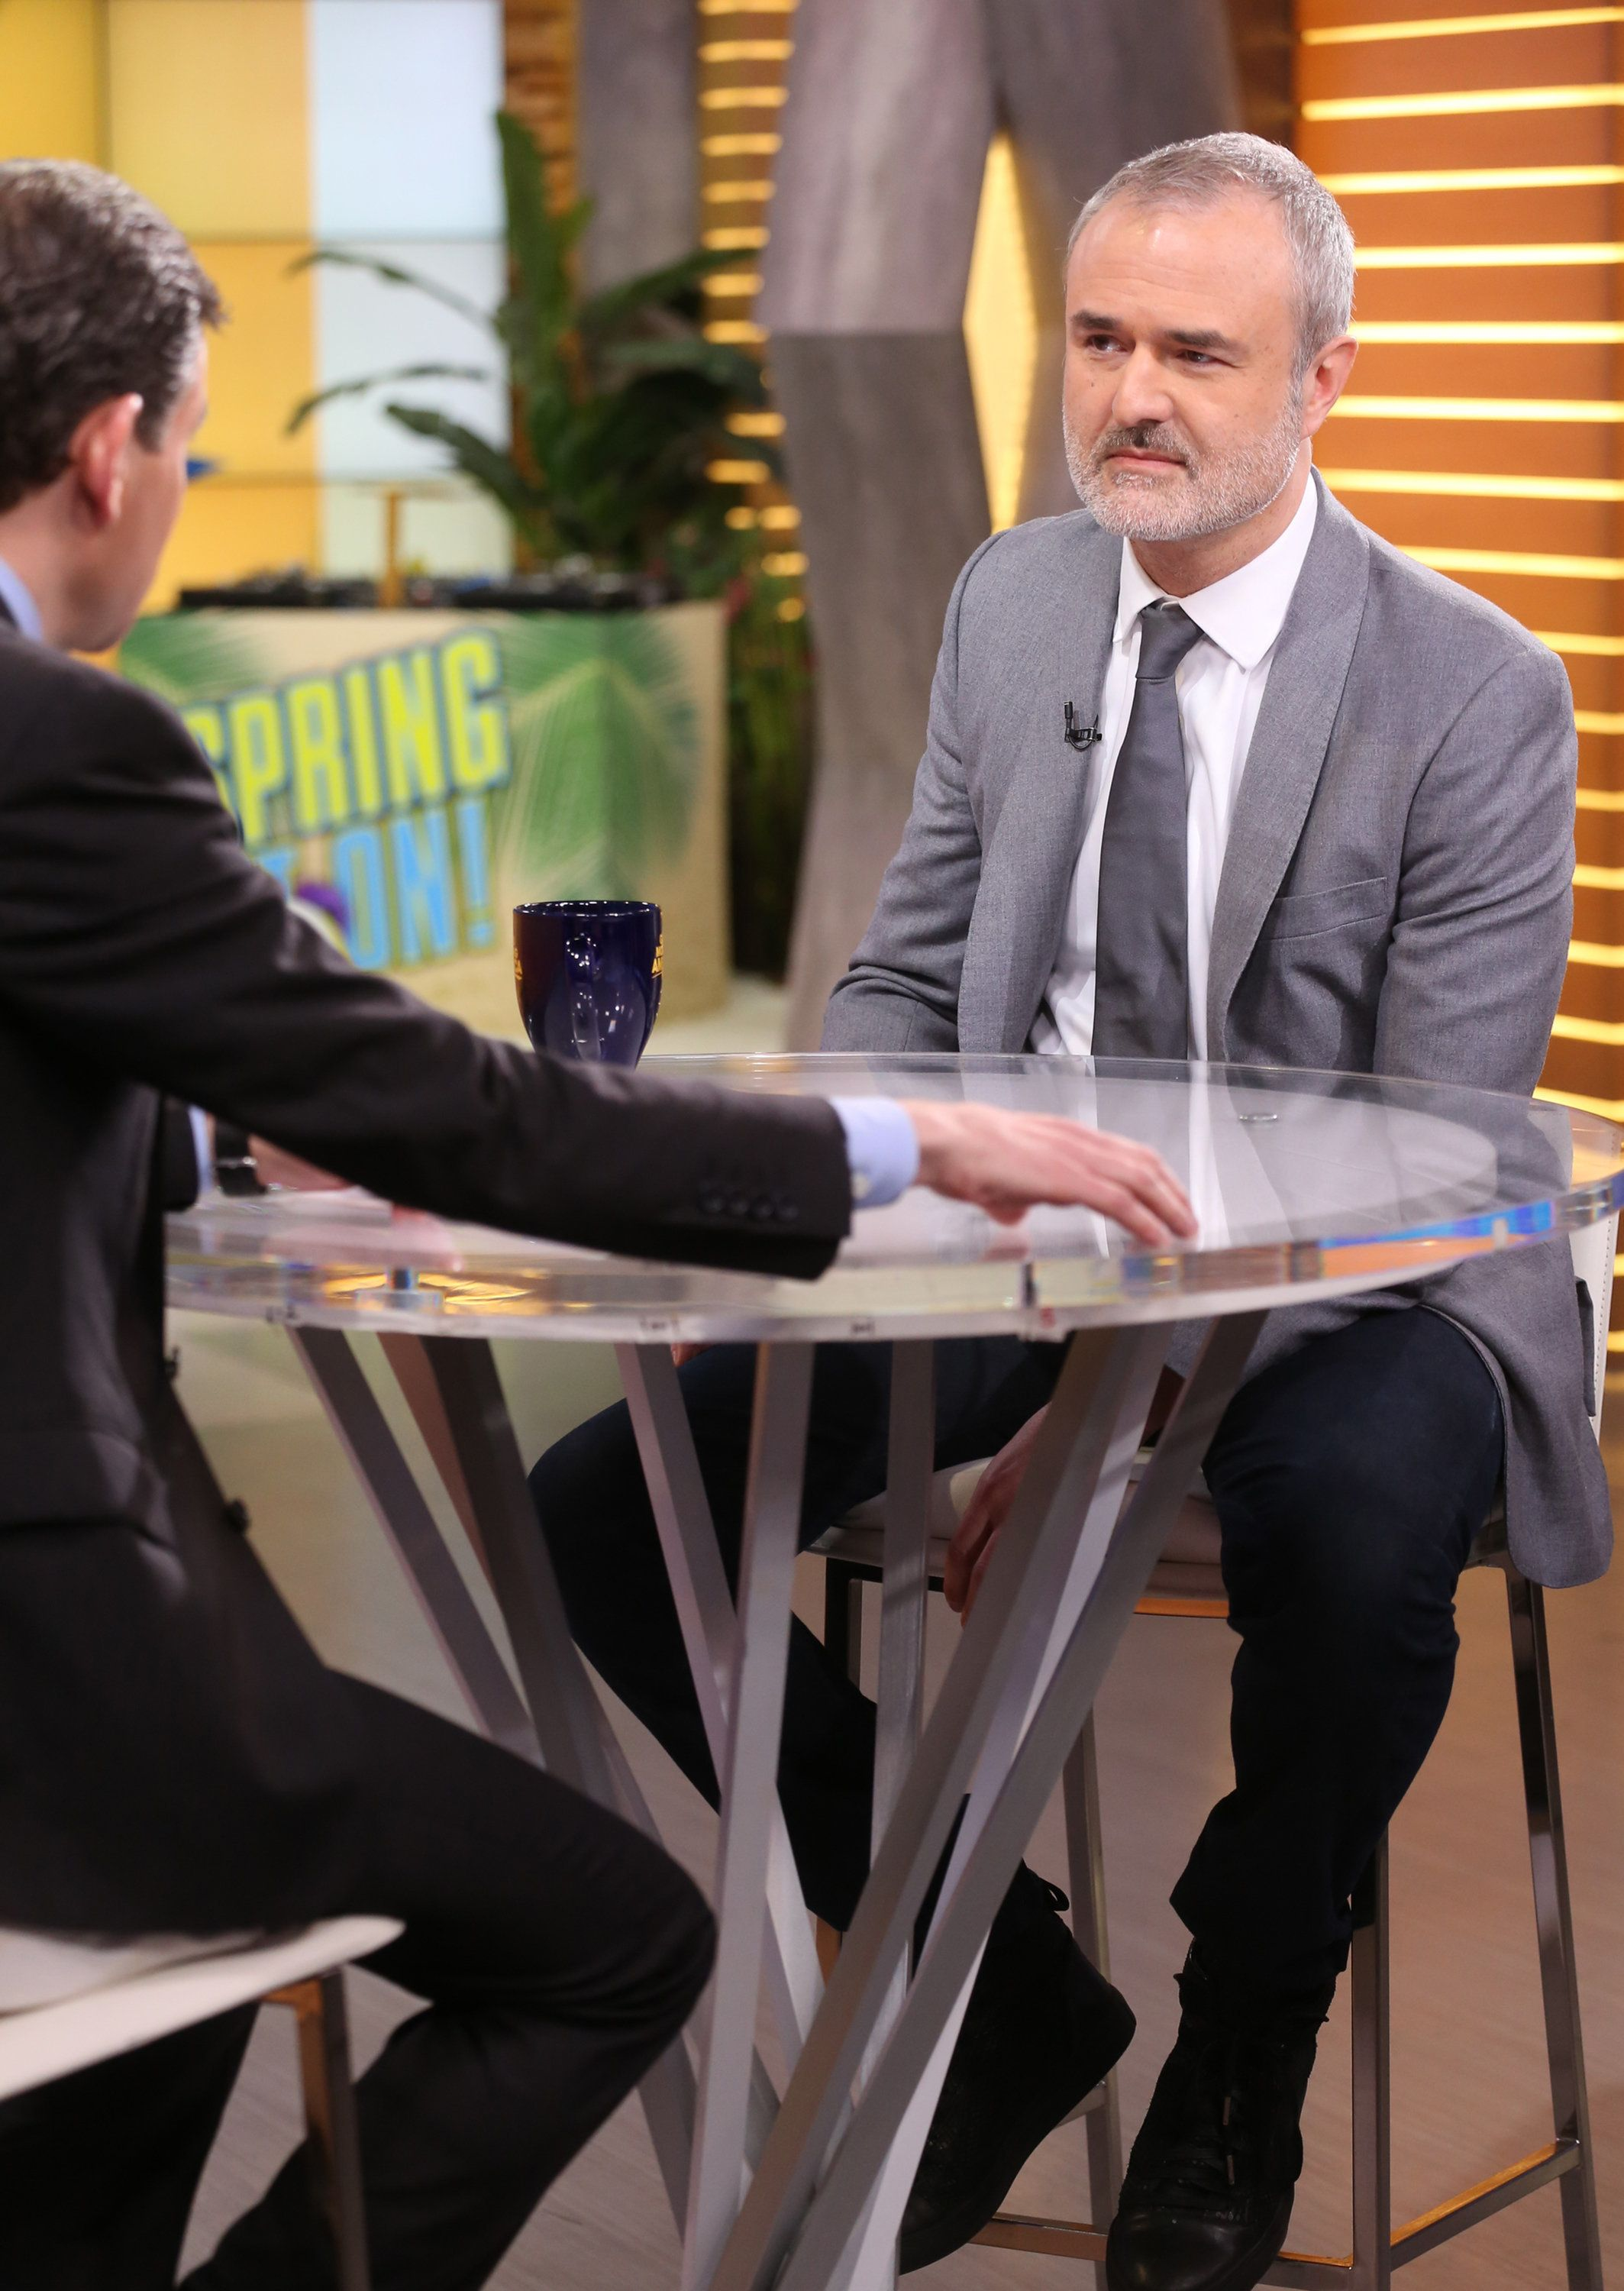 Gawker founder Nick Denton appears on 'Good Morning America' in this 2016 file photo.